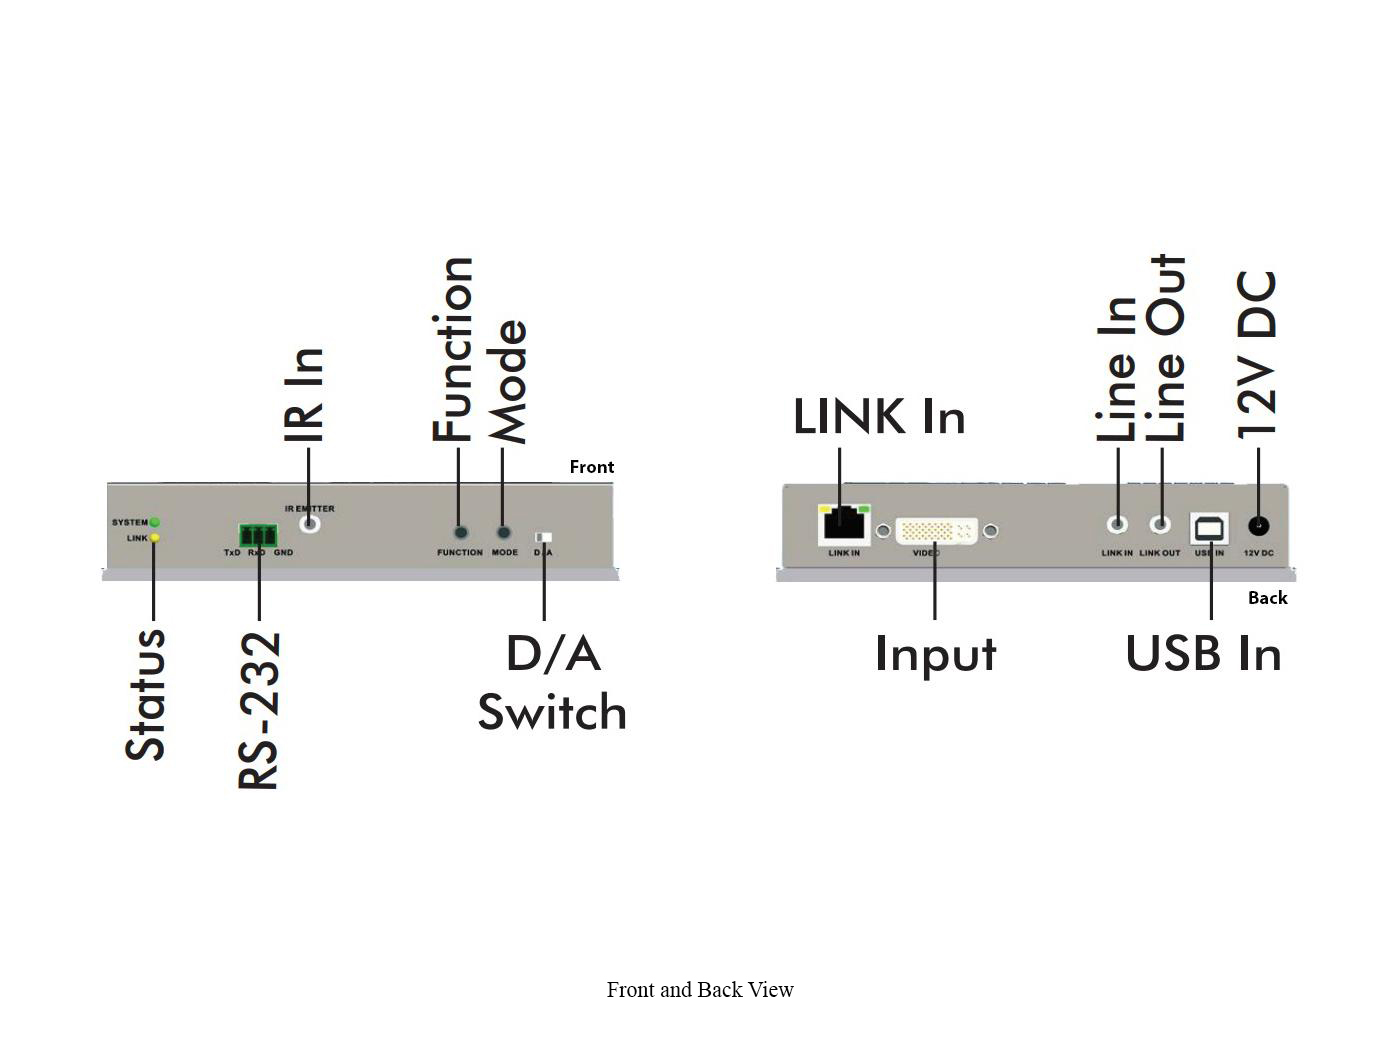 Apantac KVM-IP-Tx HDMI/DVI/VGA(DVI-I connector)/USB KVM Extender (Transmitter) over Gigabit Ethernet LAN